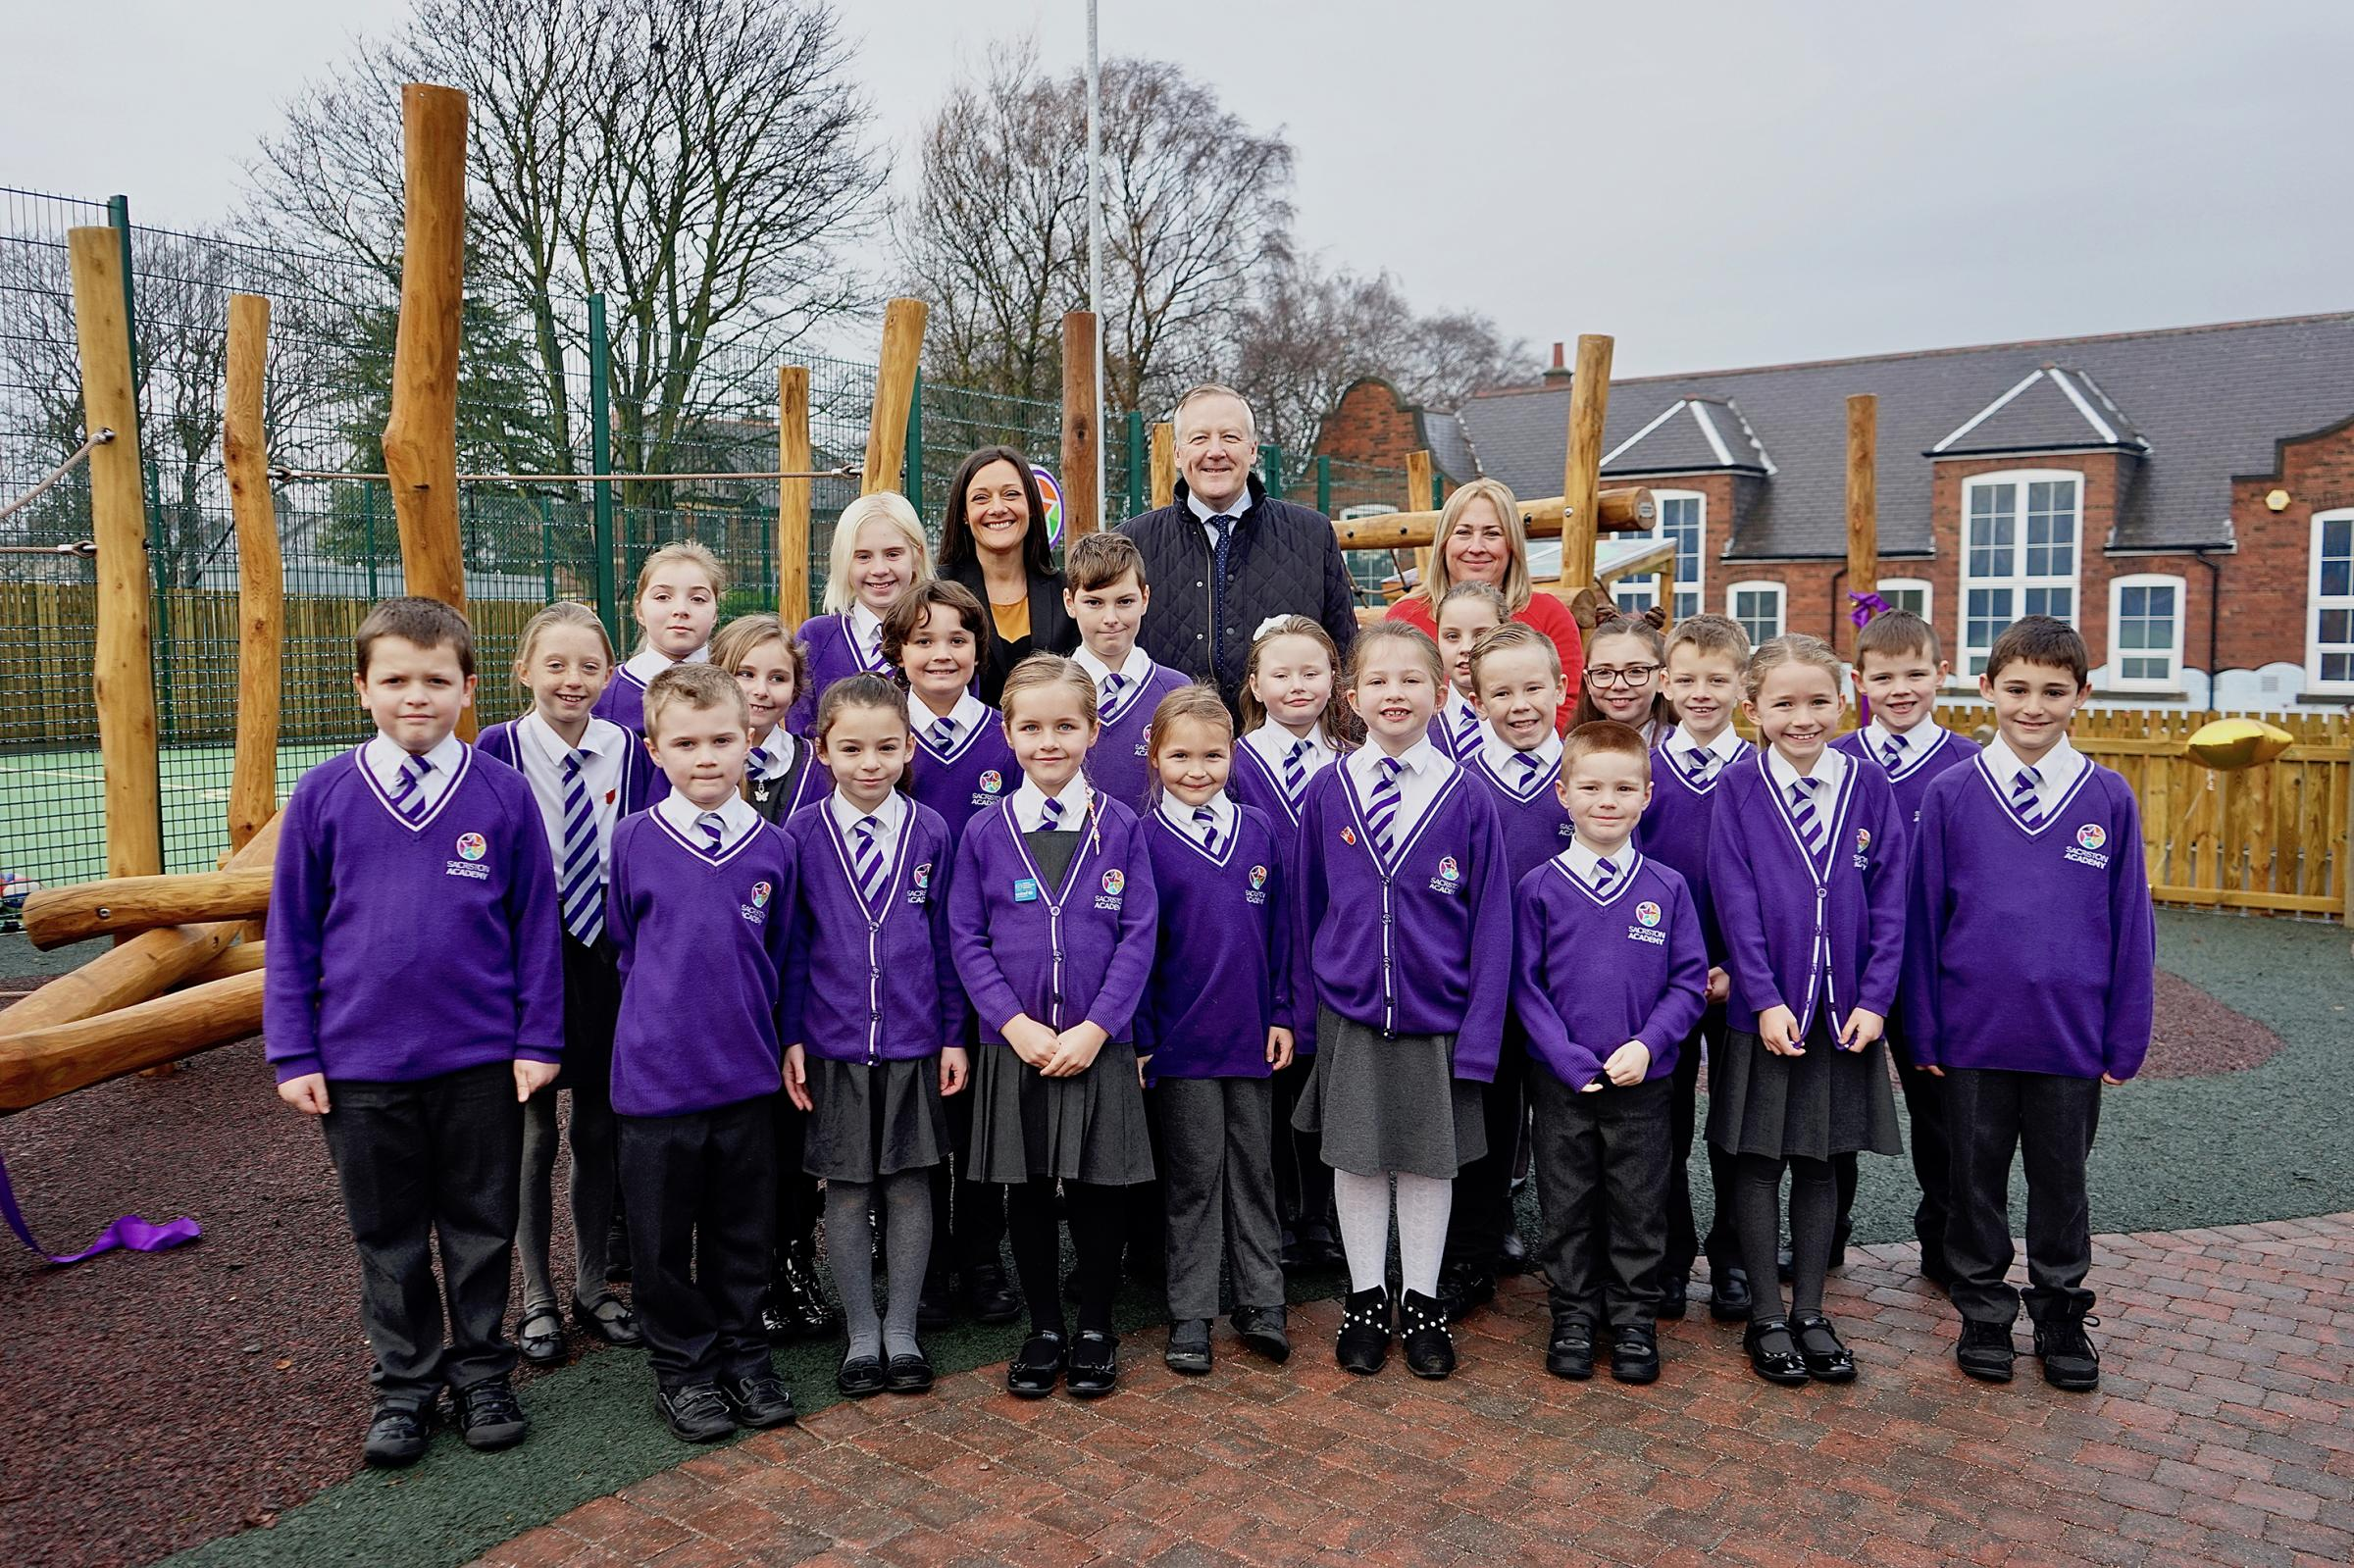 Sacriston Academy children with, from left, Annalei Inkster, Kevan Jones and Lesley Powell